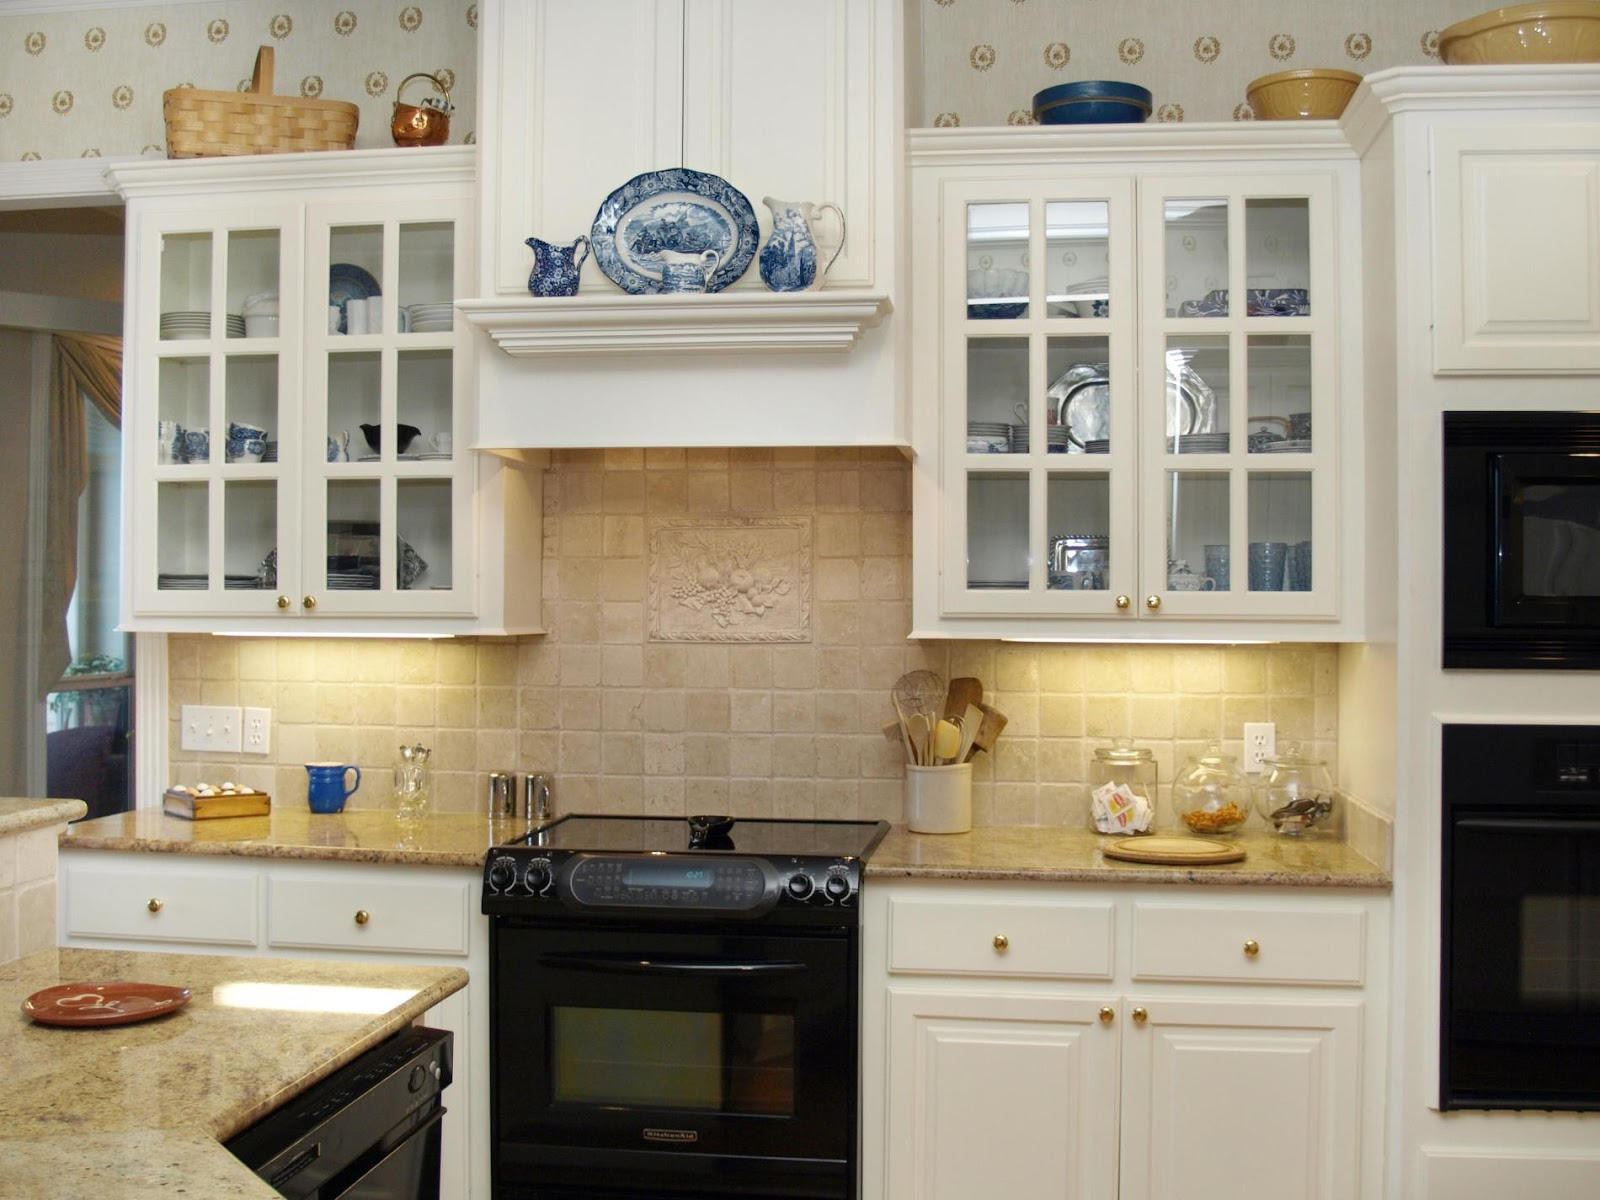 Kitchen shelves decoration dream house experience for Kitchen decorating ideas for a small kitchen